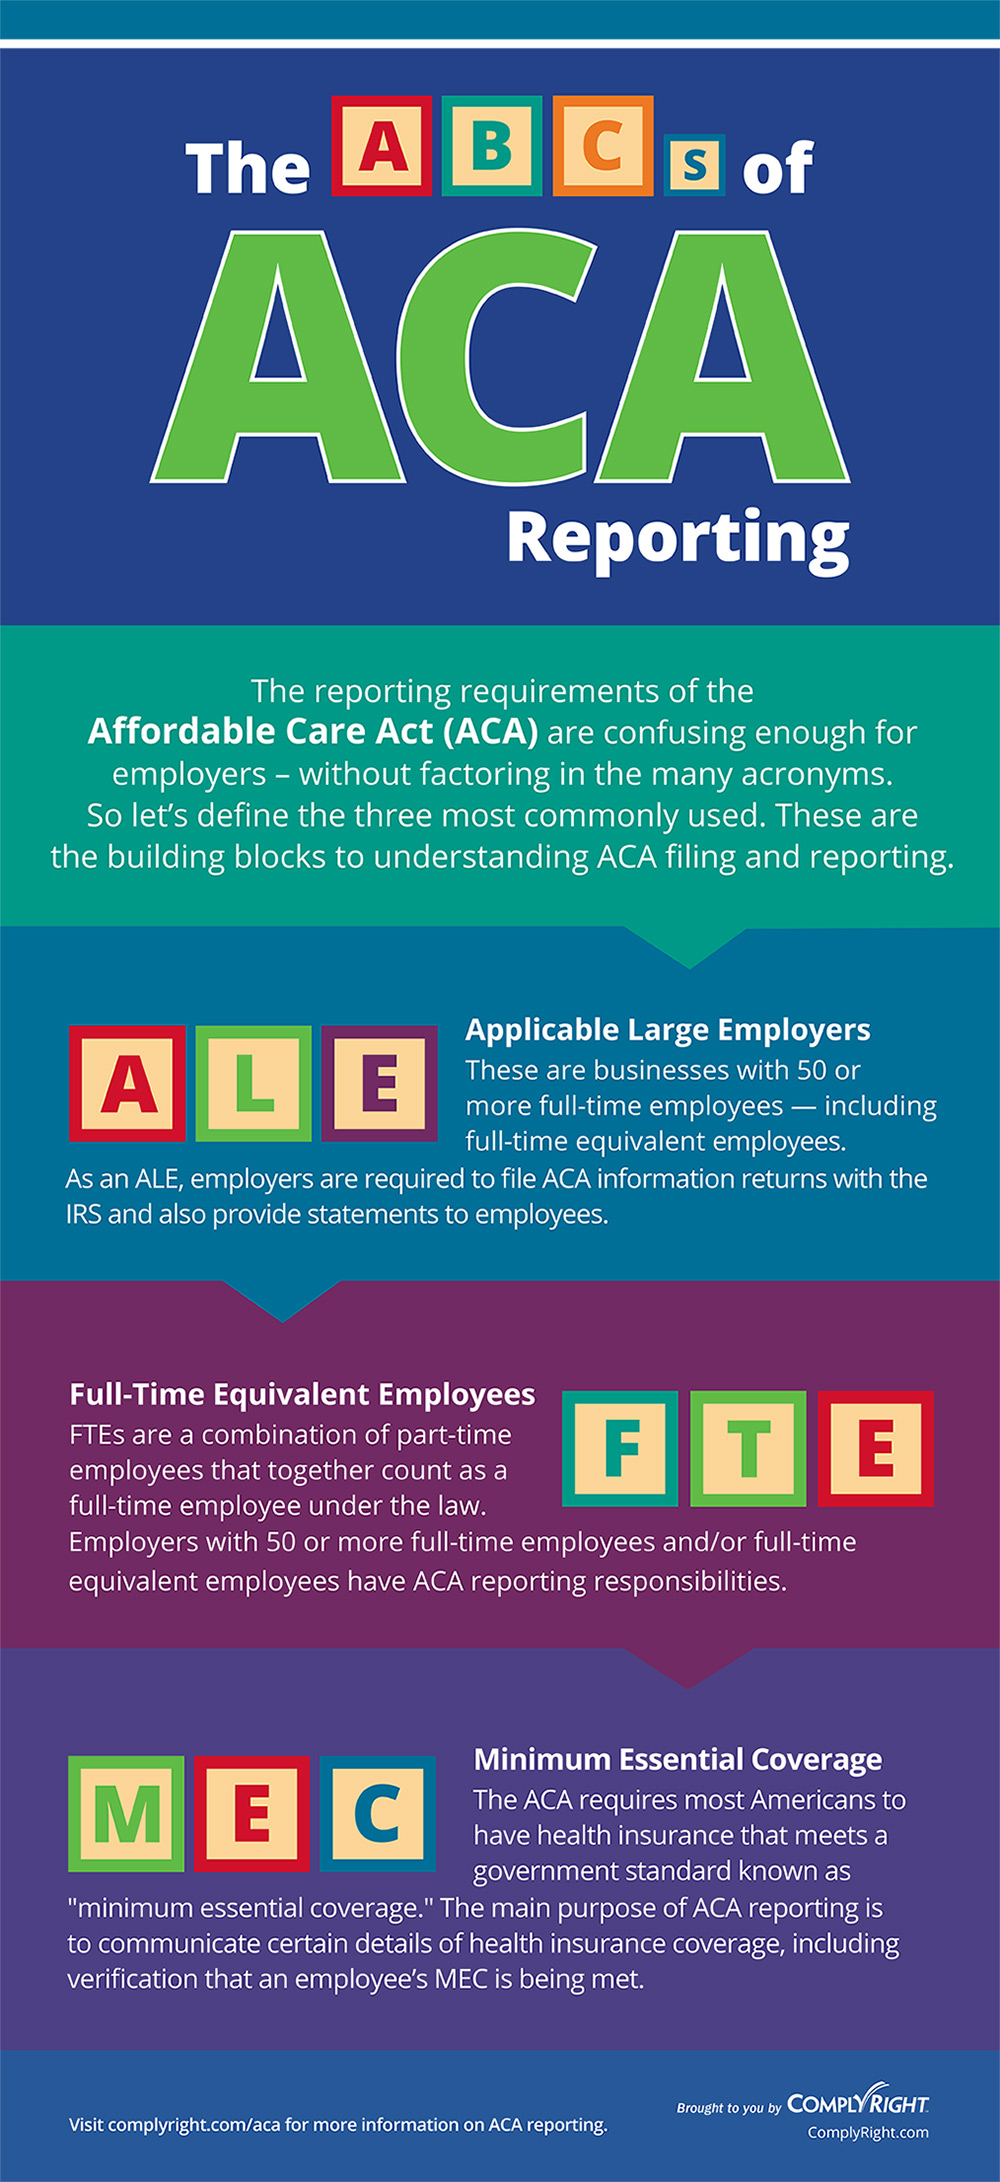 This infographic simplifies determining if an employee is exempt or non-exempt under the latest FLSA guidelines.